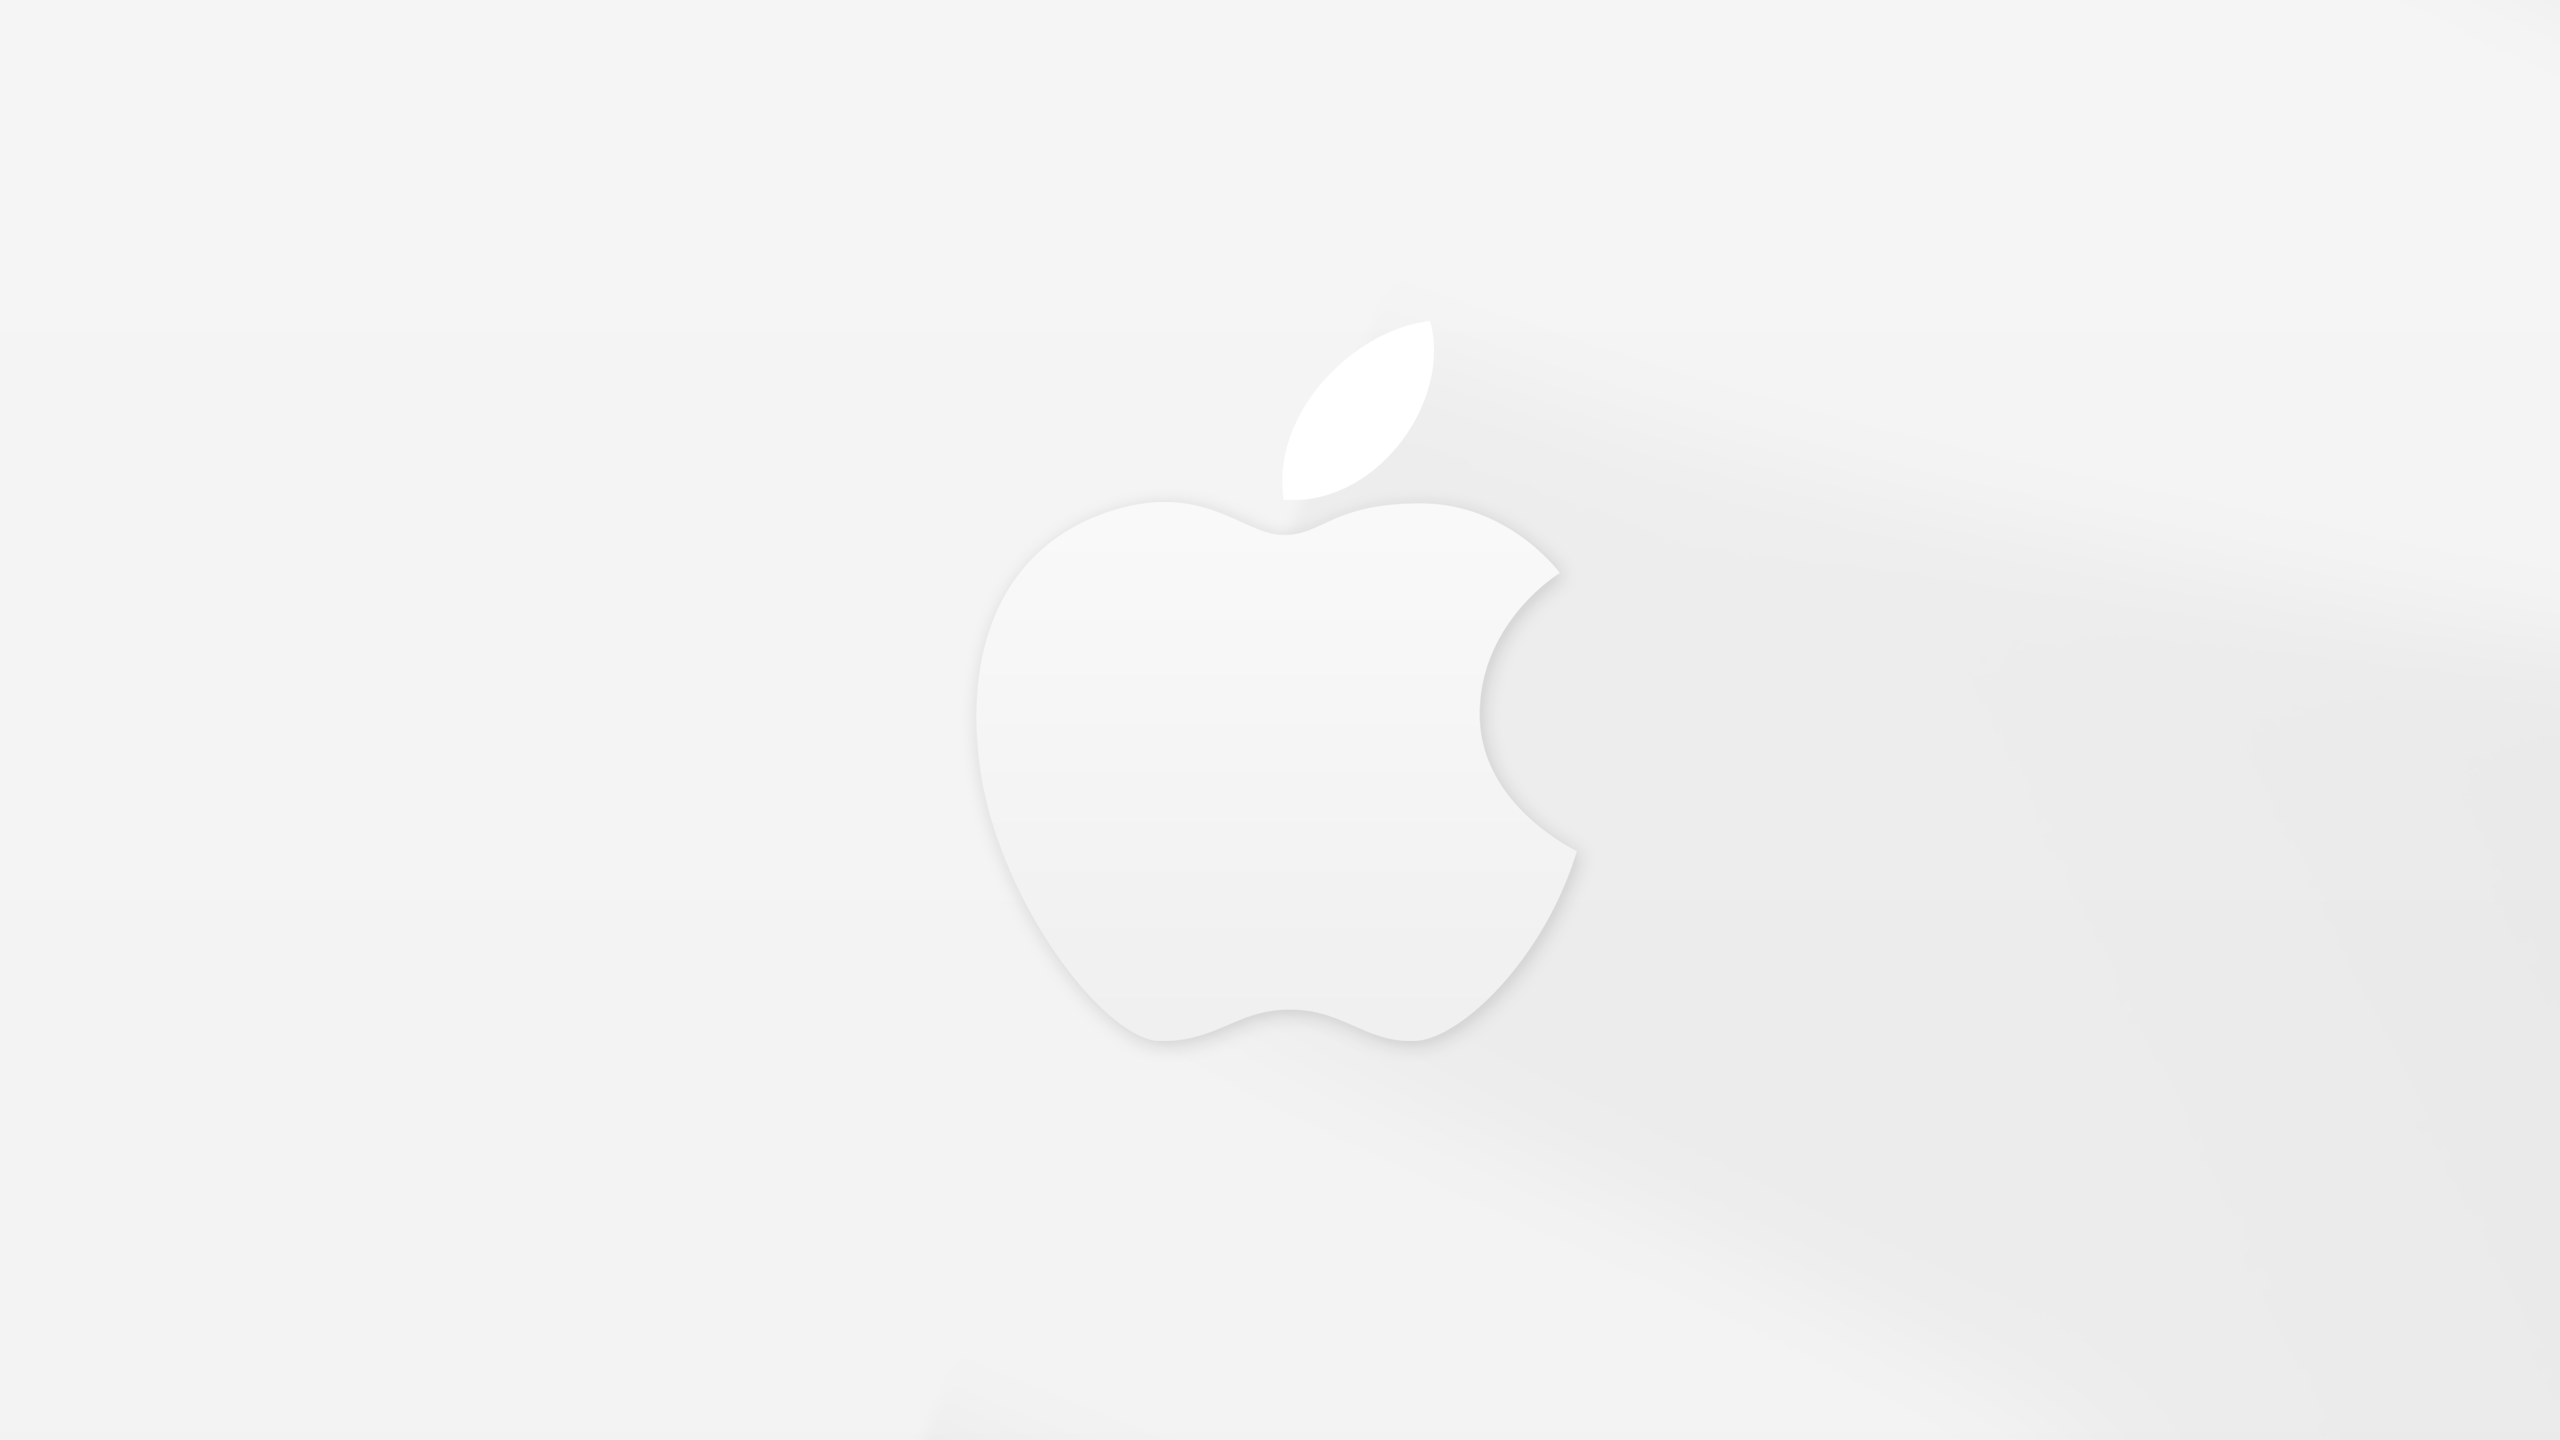 Minimal Gradient Wallpaper Iphone X September 9 Invites Wallpapers Wish We Could Say More